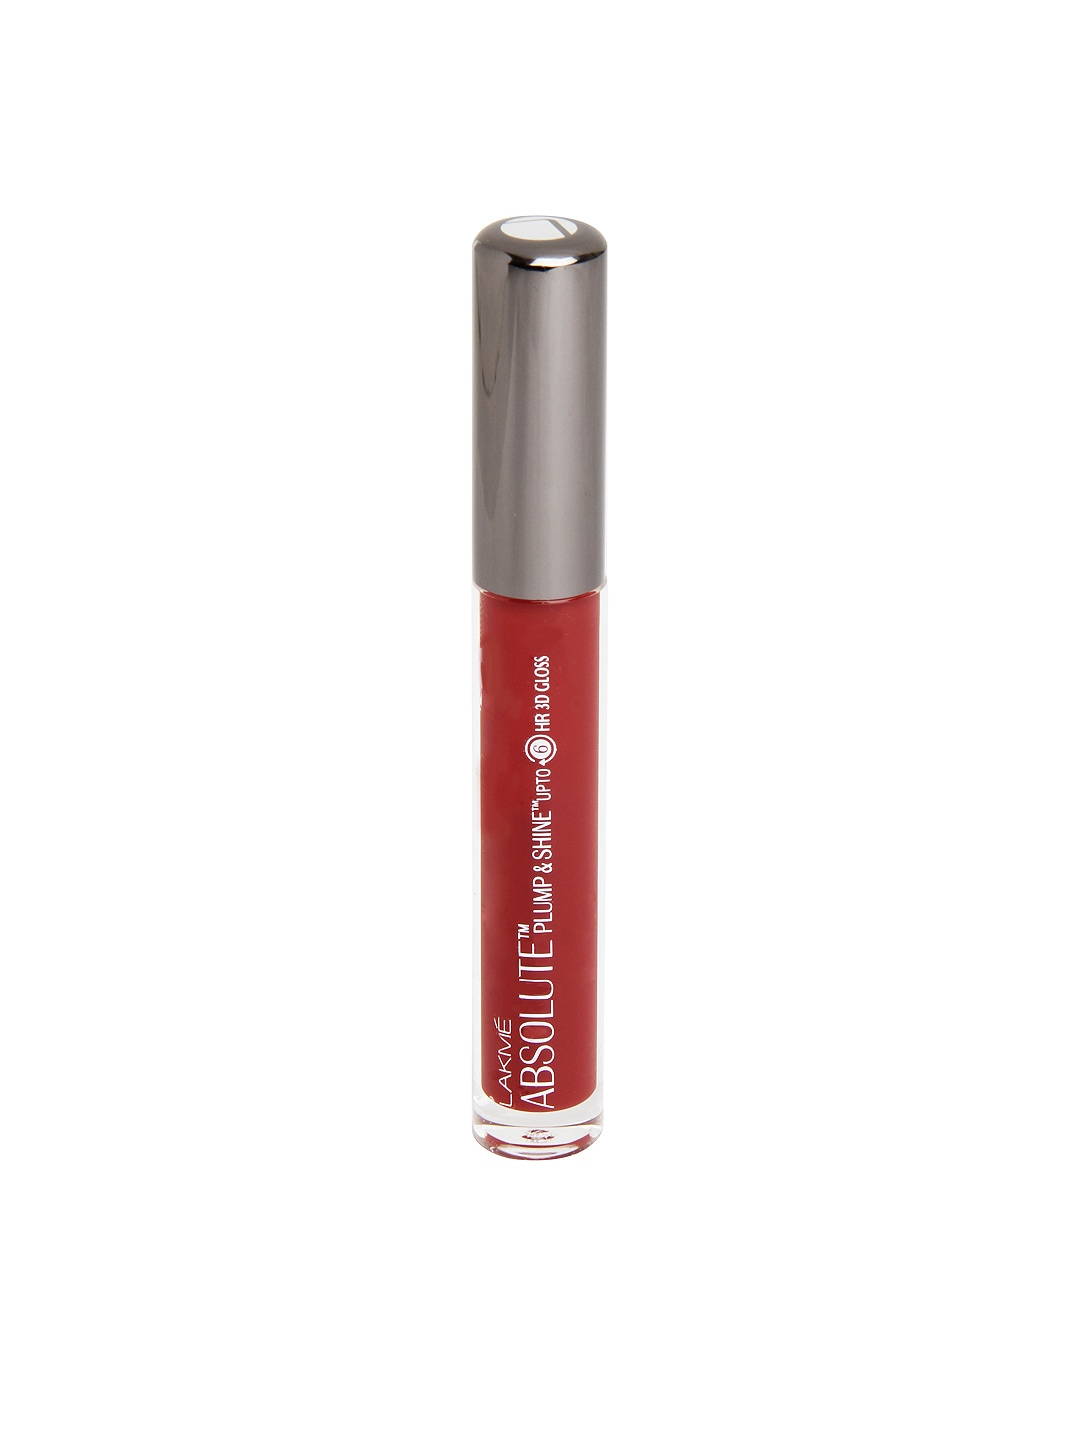 Lakme Lip Glosses Price List In India 25 November 2018 Conditioner Pixy 35off Absolute Plump Shine Red Gloss